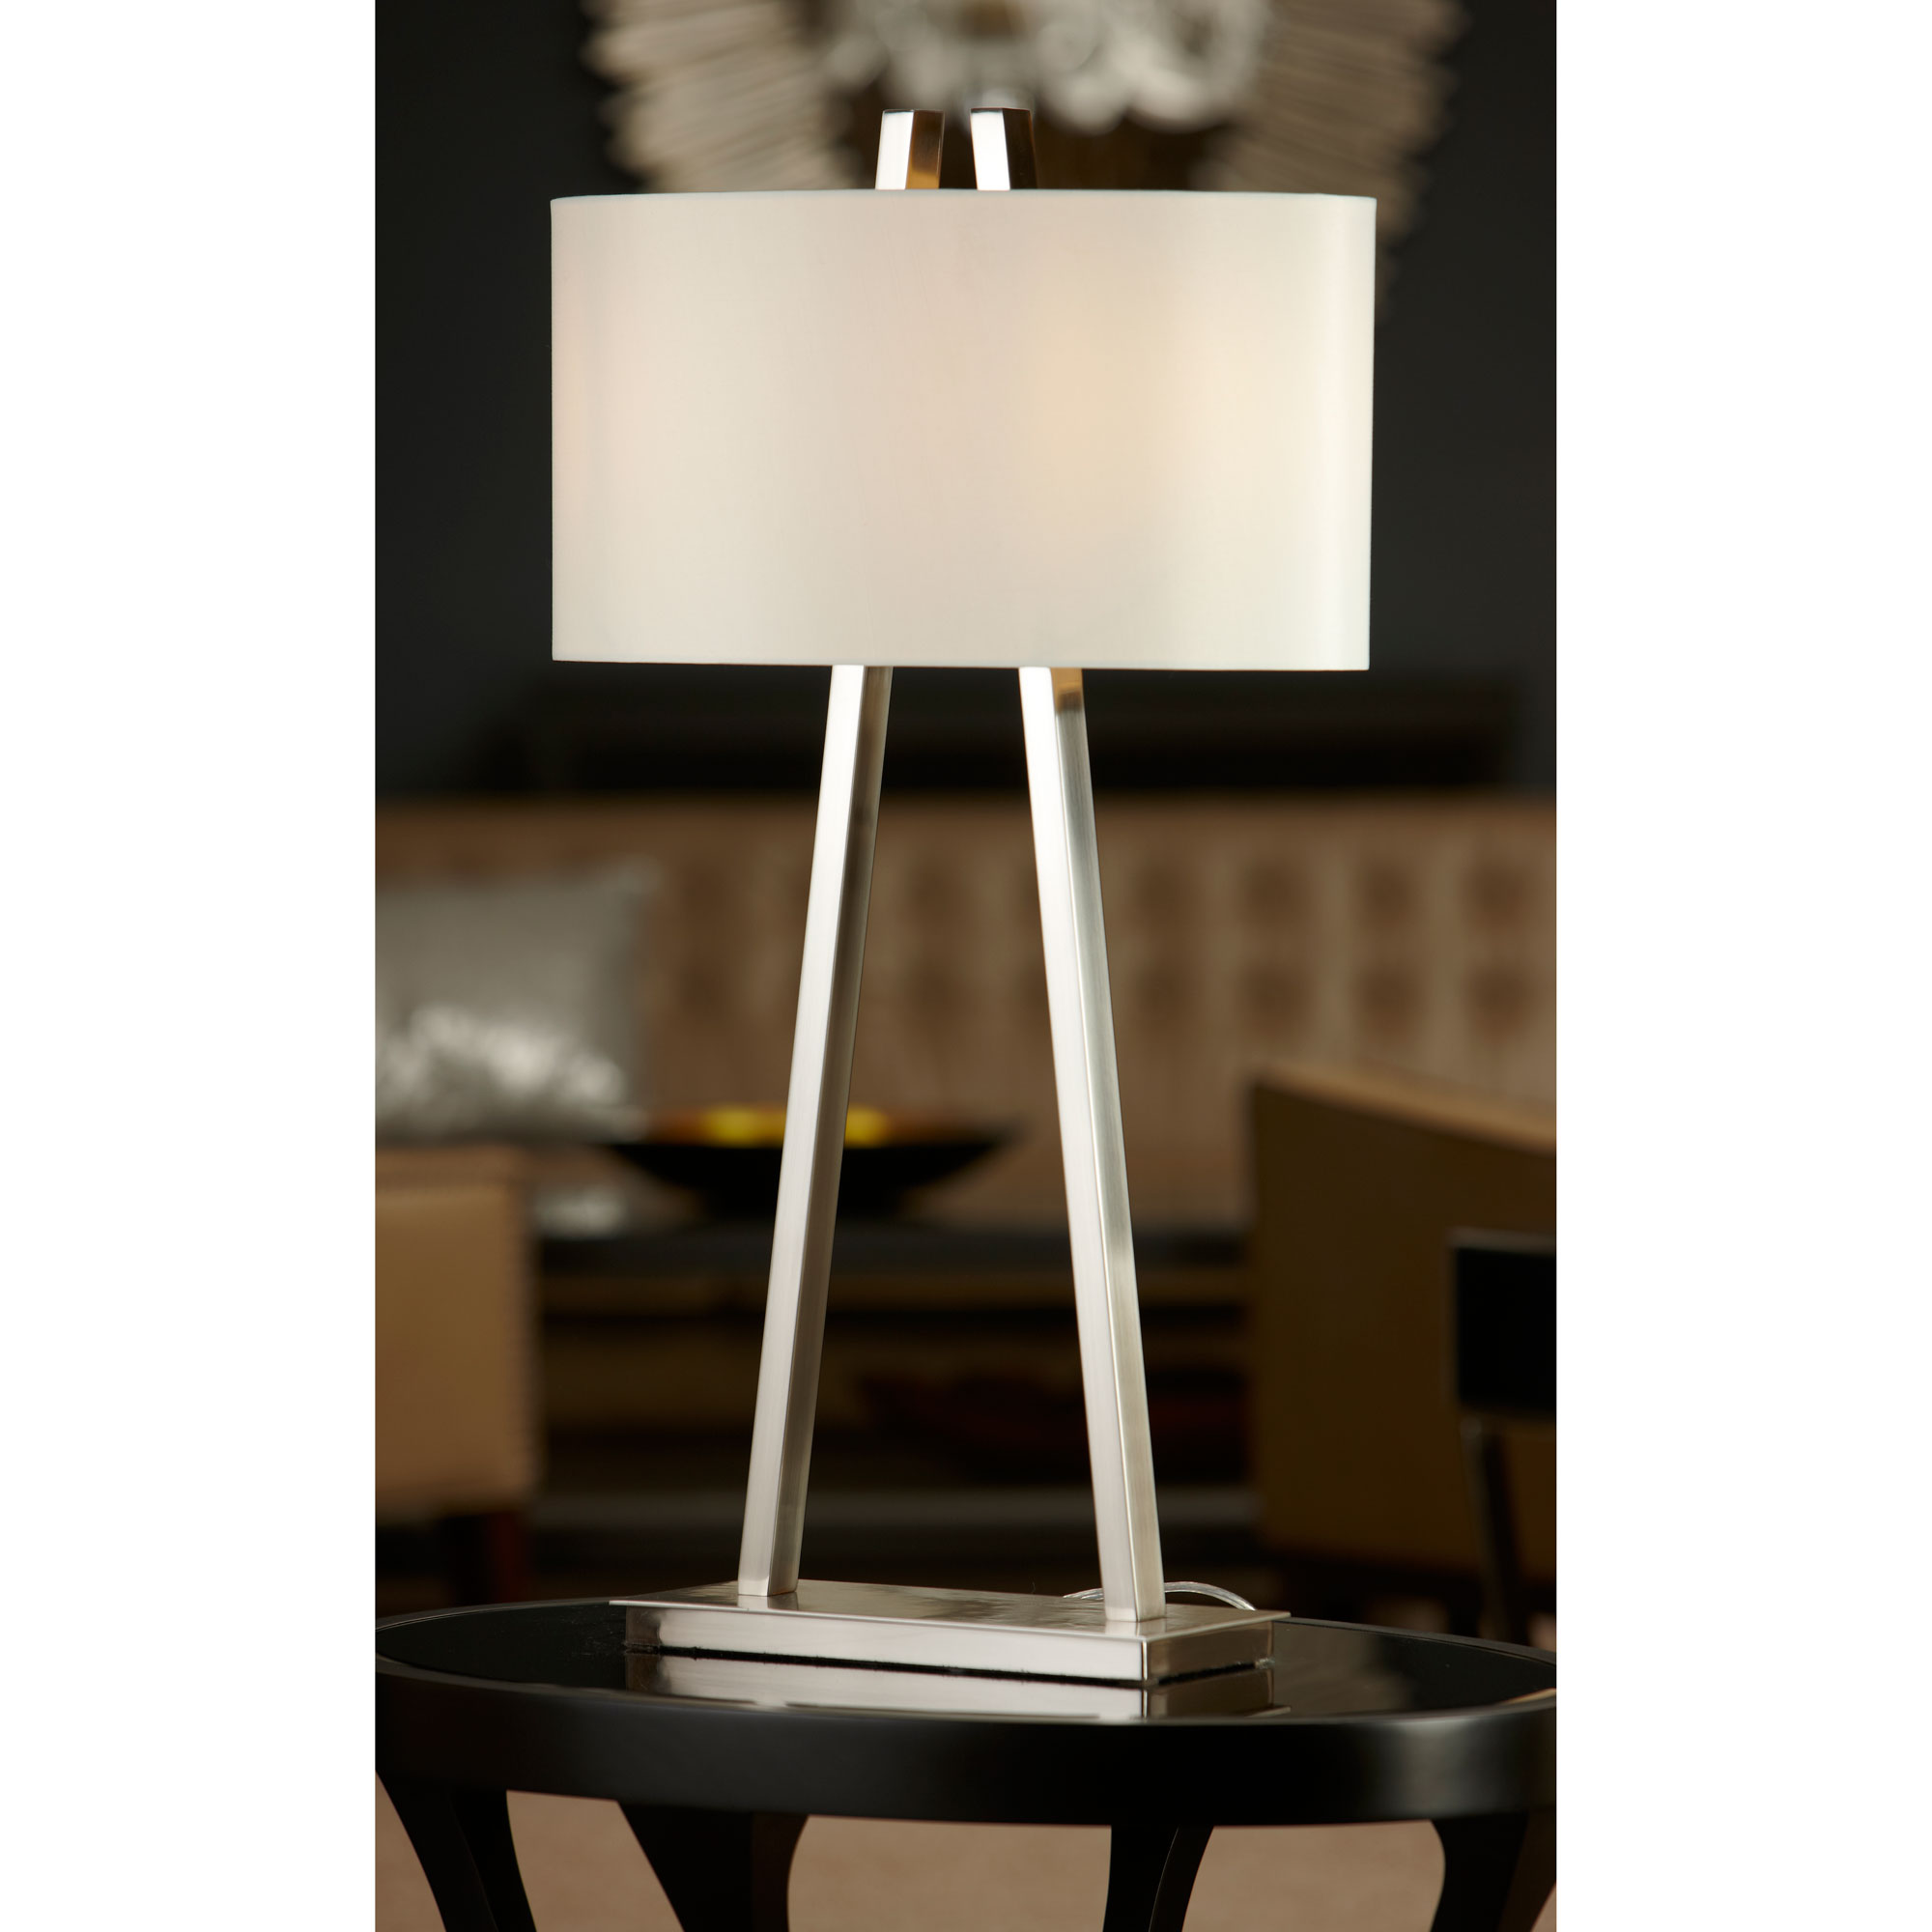 Baxtar Table Lamp brushed nickel table lamp with shade